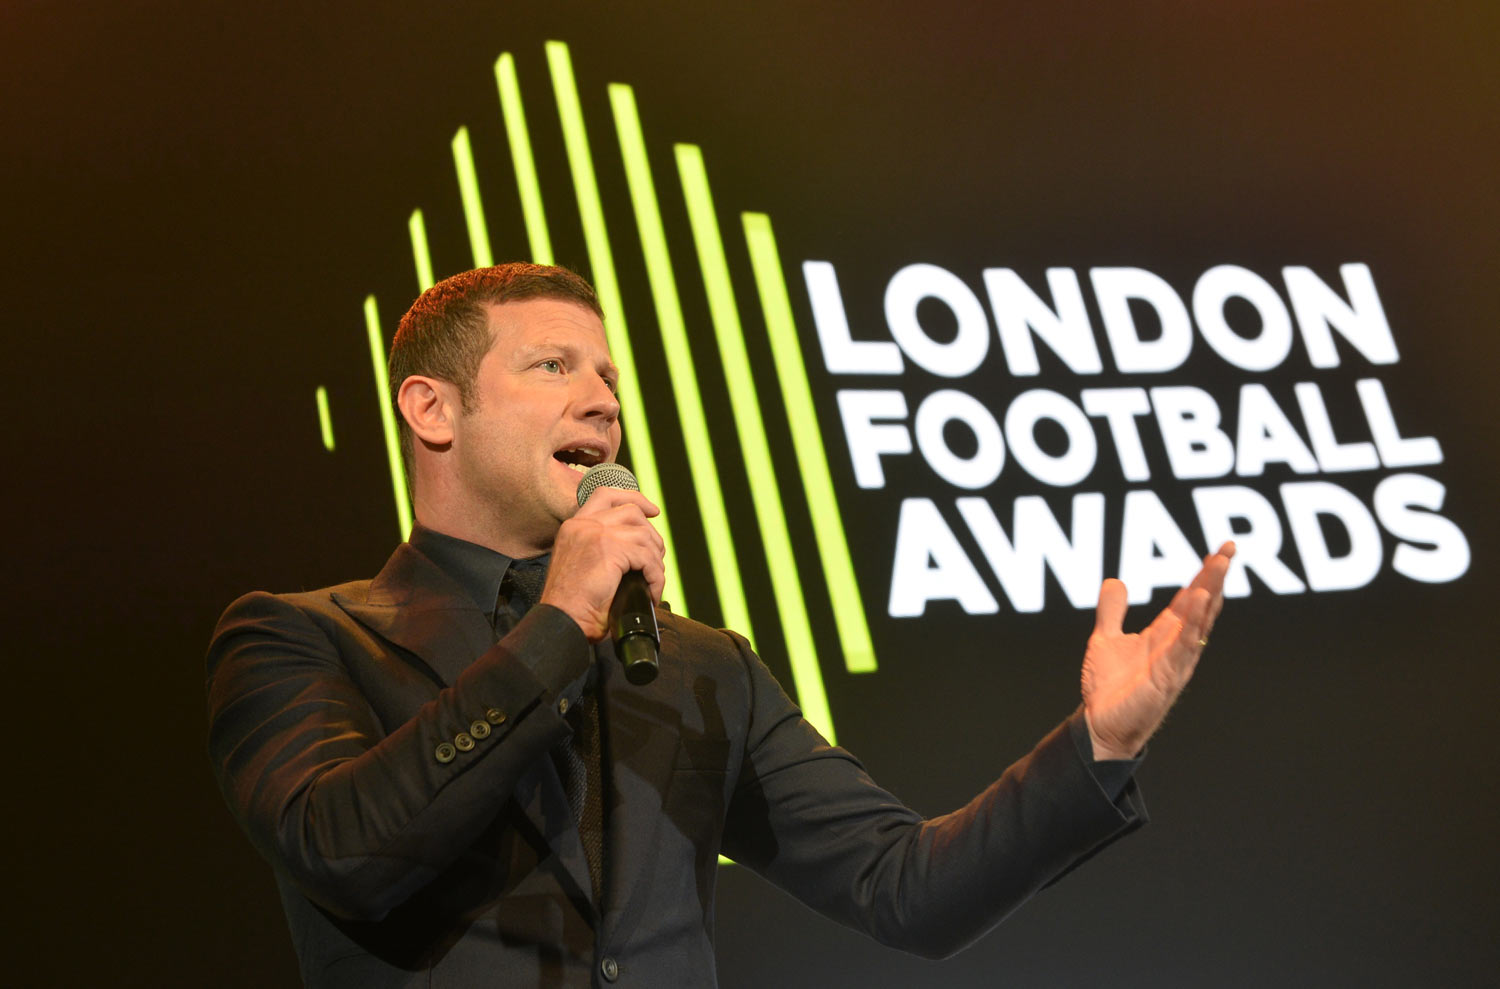 London Football Awards